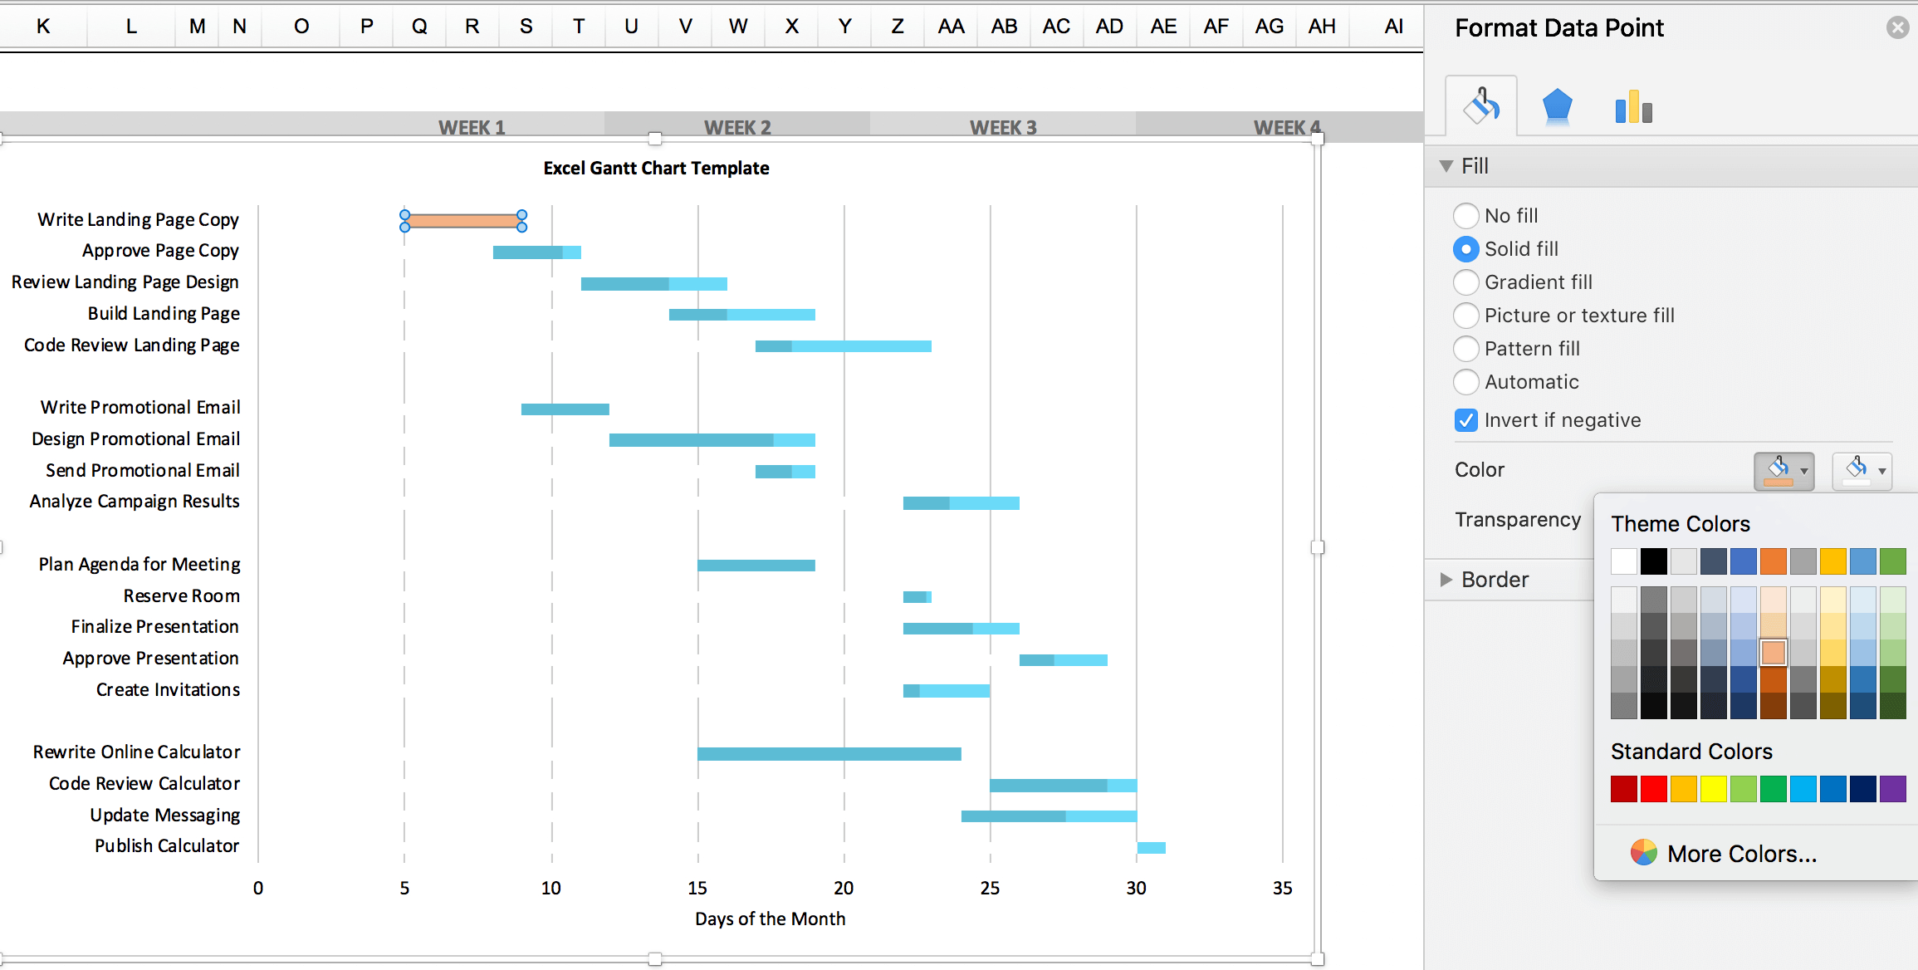 Free Gantt Chart Excel Template: Download Now | Teamgantt Within Gantt Chart Timeline Template Excel